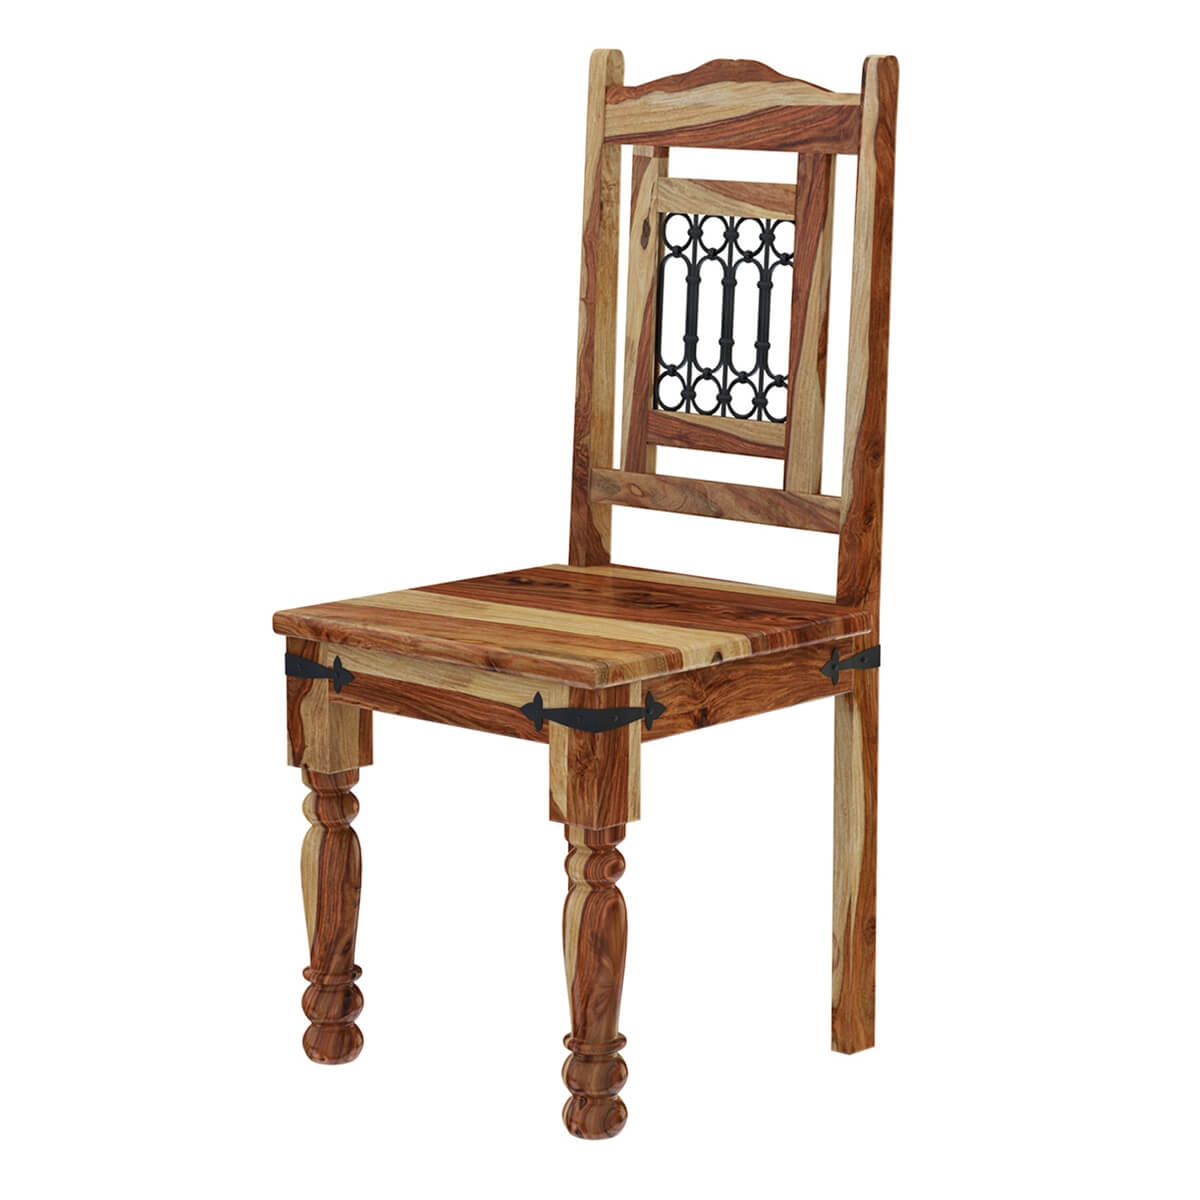 Vandana Solid Wood & Wrought Iron Rustic Kitchen Dining Chair